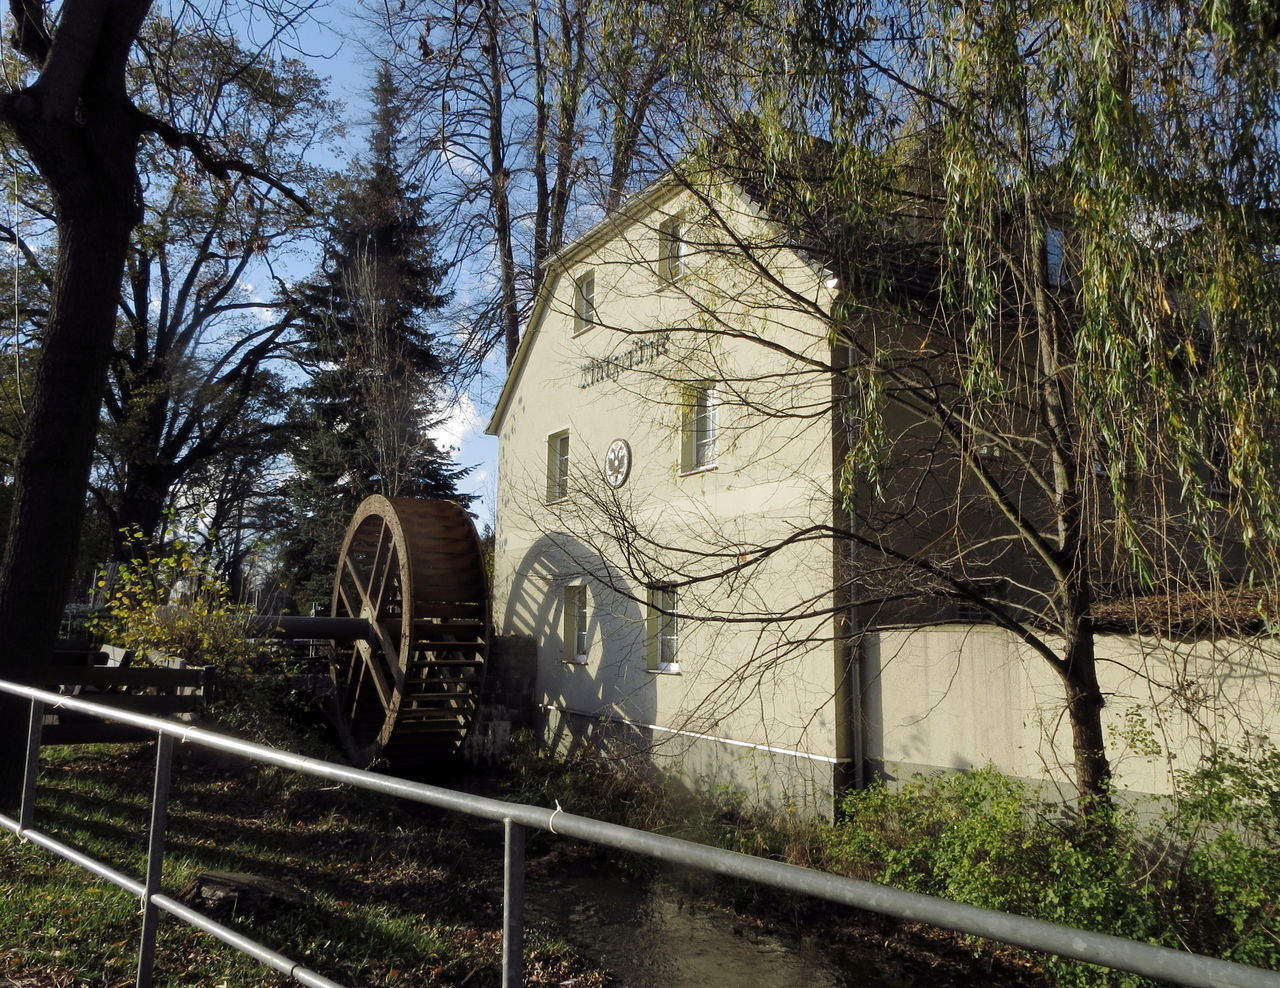 Matzmühle Abandoned Architecture Bare Tree Branch Building Exterior Built Structure Day Fence Historic House Leading Low Angle View Matzmühle Narrow No People Old Outdoors Residential Structure Ruined The Way Forward Tree